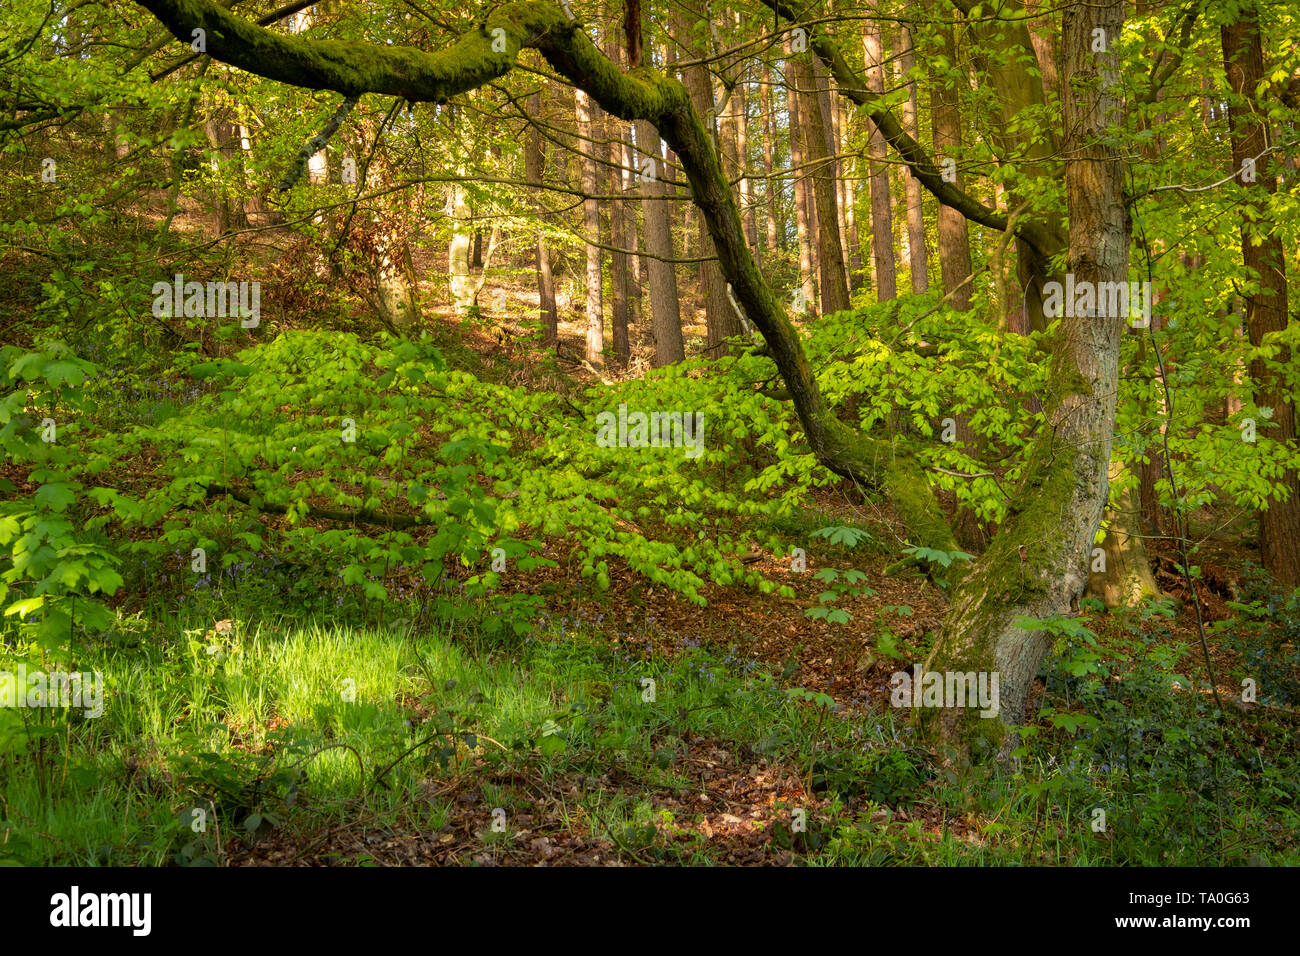 A view through the ancient woodland of The Outwoods in Charnwood Forest. - Stock Image